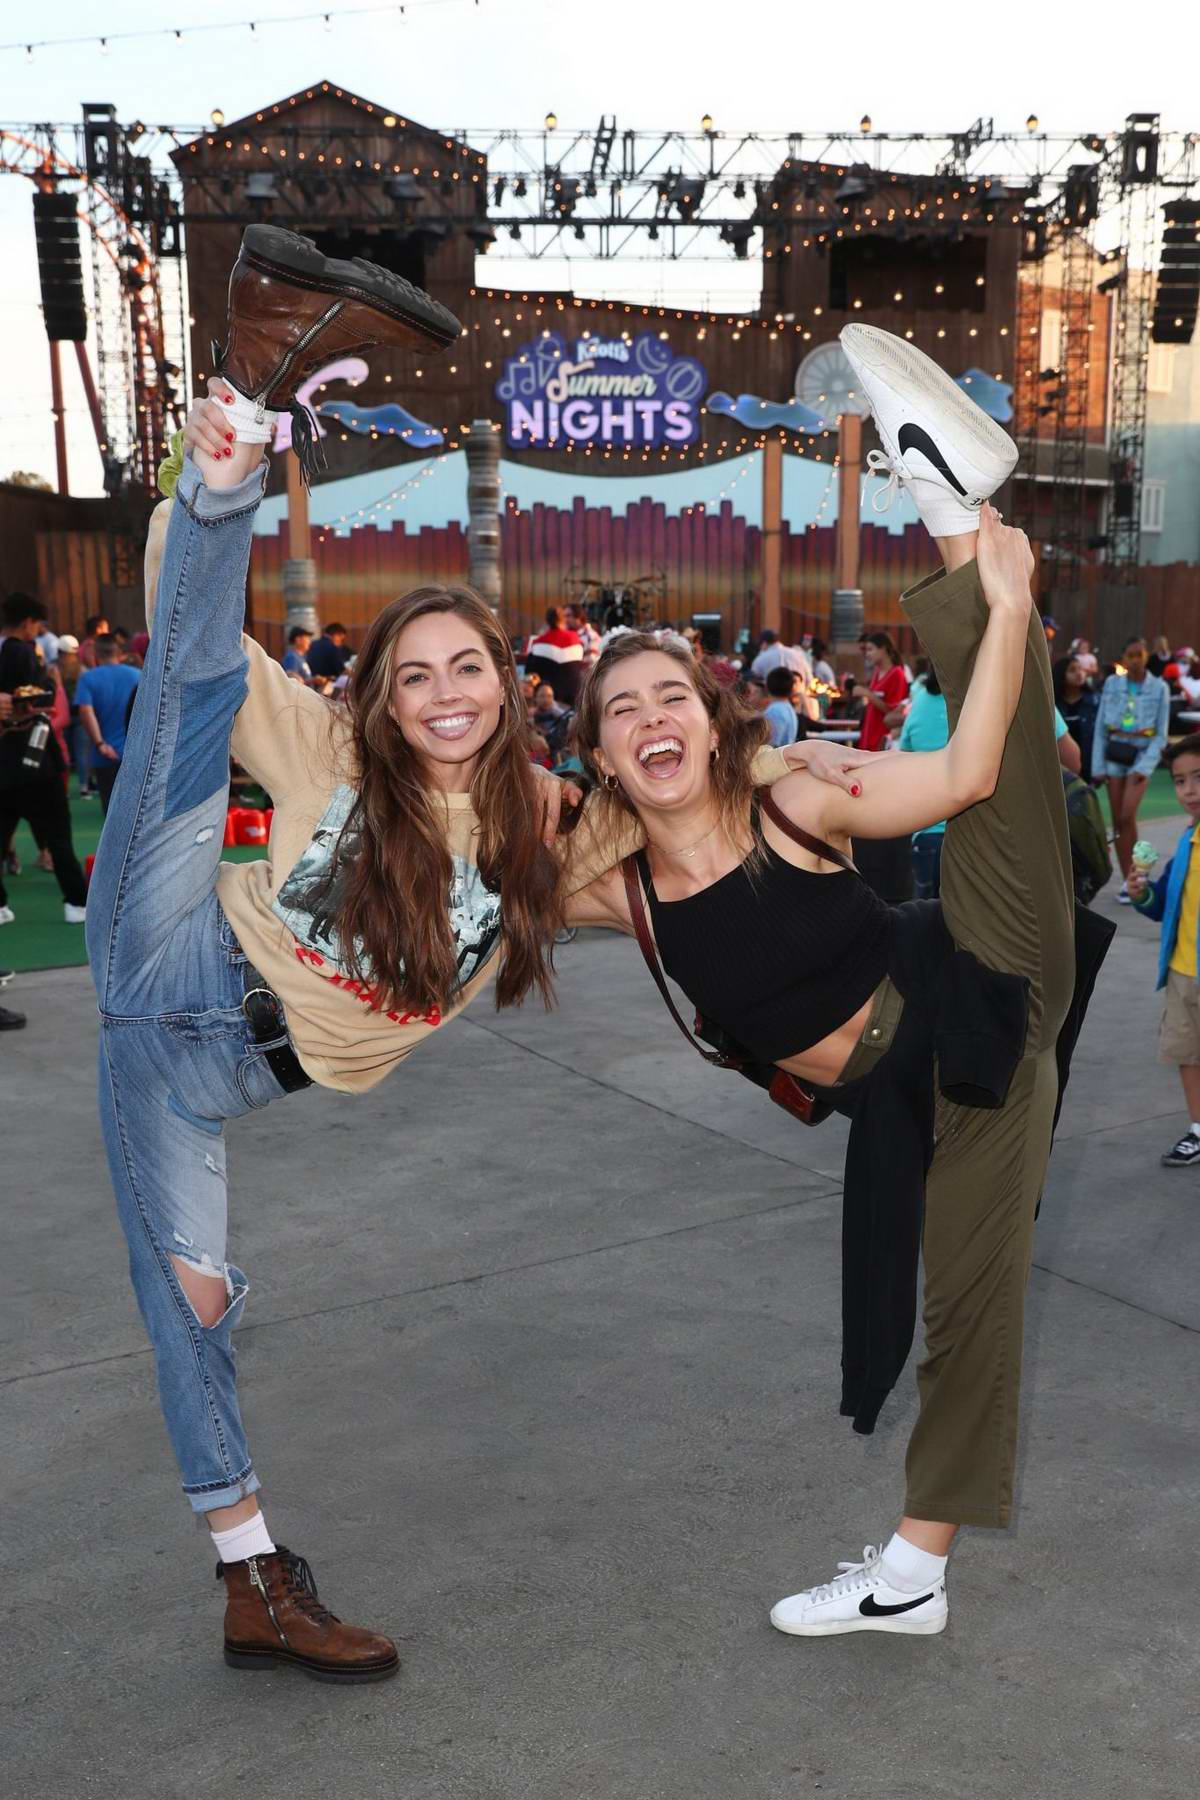 Haley Lu Richardson and Caitlin Carver enjoy a day out with friends at Knott's Summer Nights in Buena Park, California